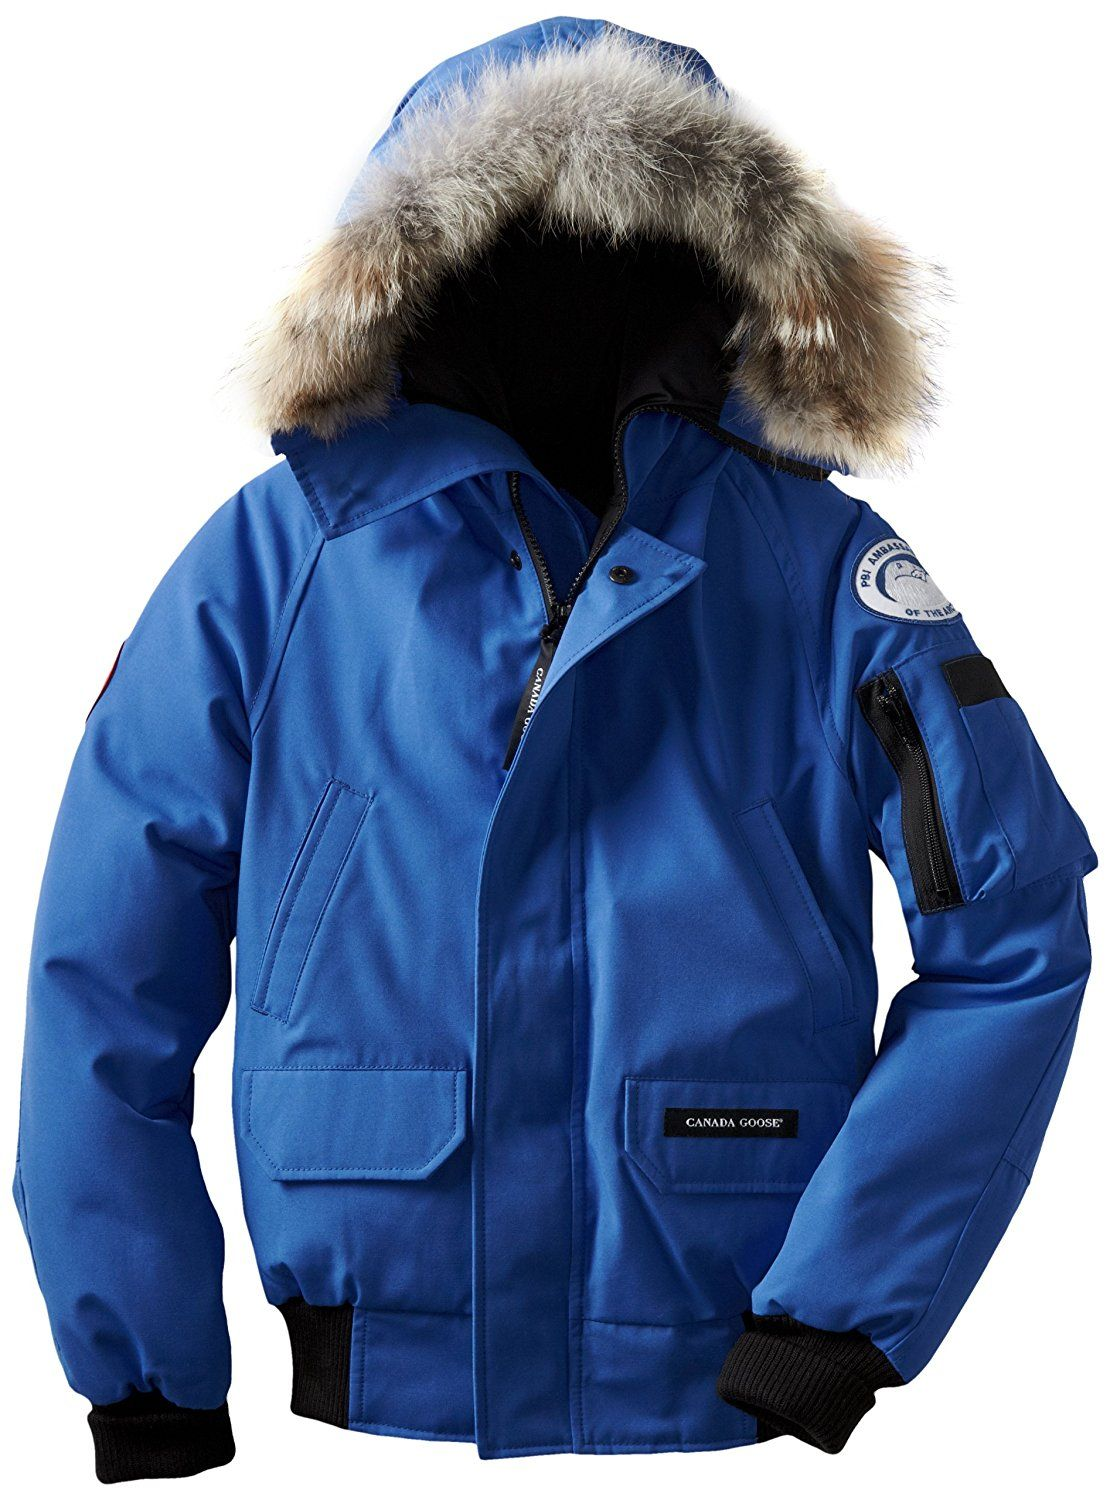 Canada Goose Youth PBI Chilliwack The youth version of the official PBI Expedition Parka, worn